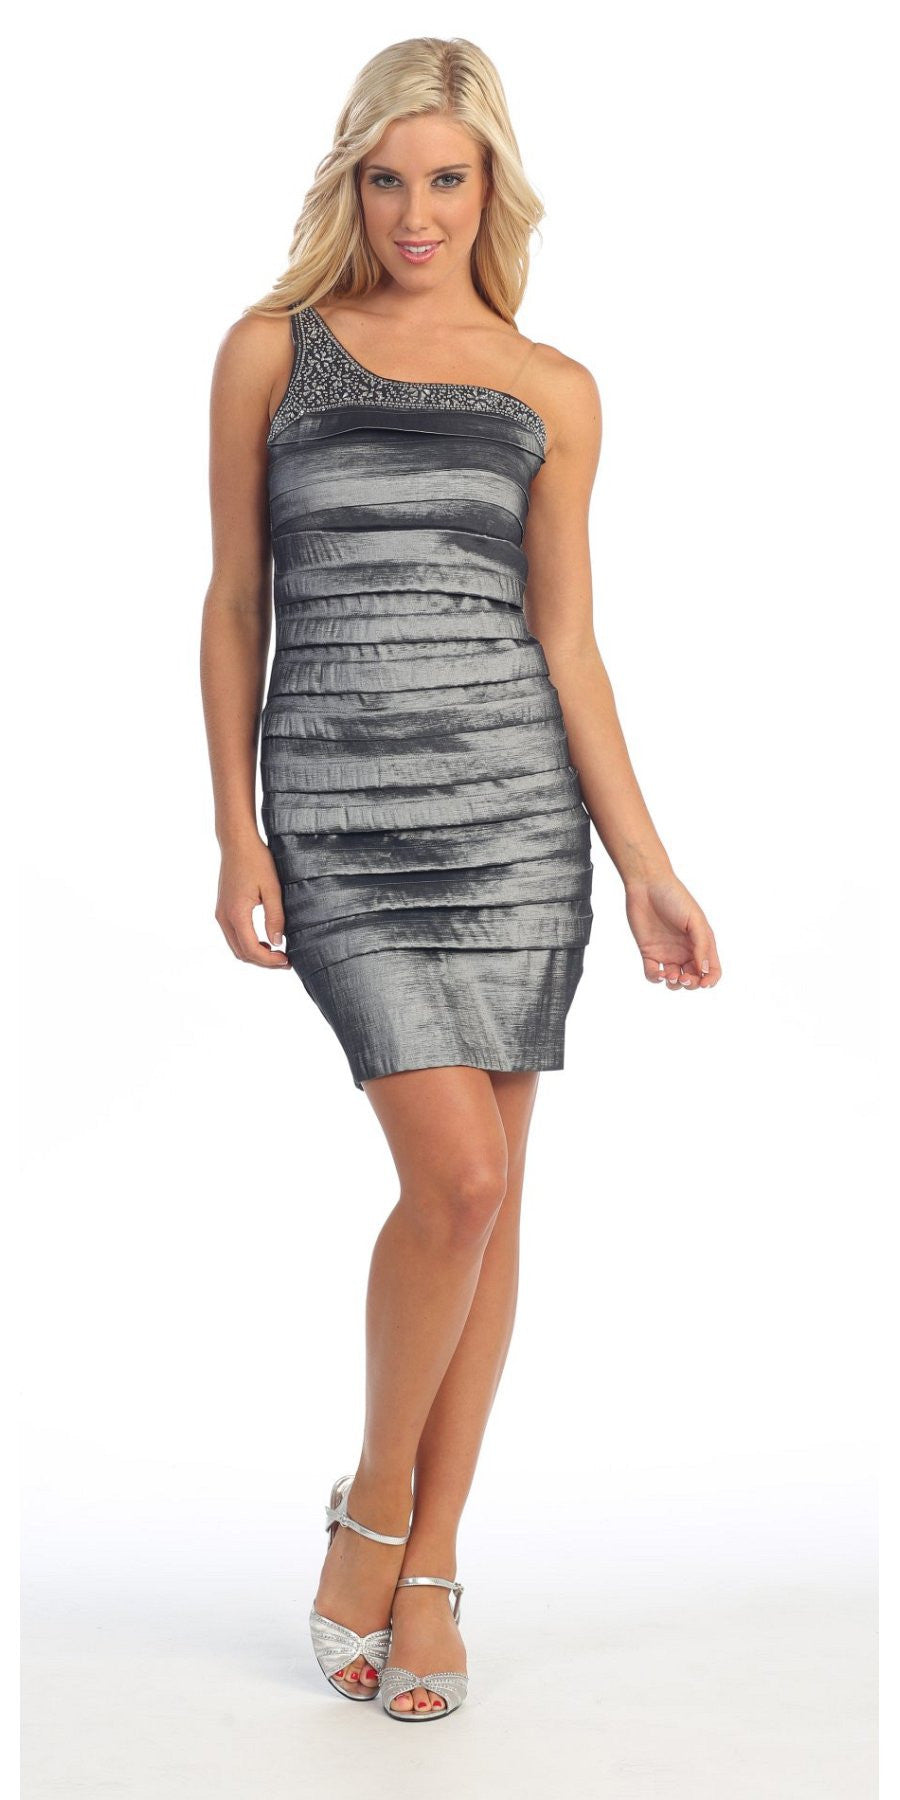 Single Shoulder Strap Dark Silver Cocktail Dress Short Stretch Taffeta